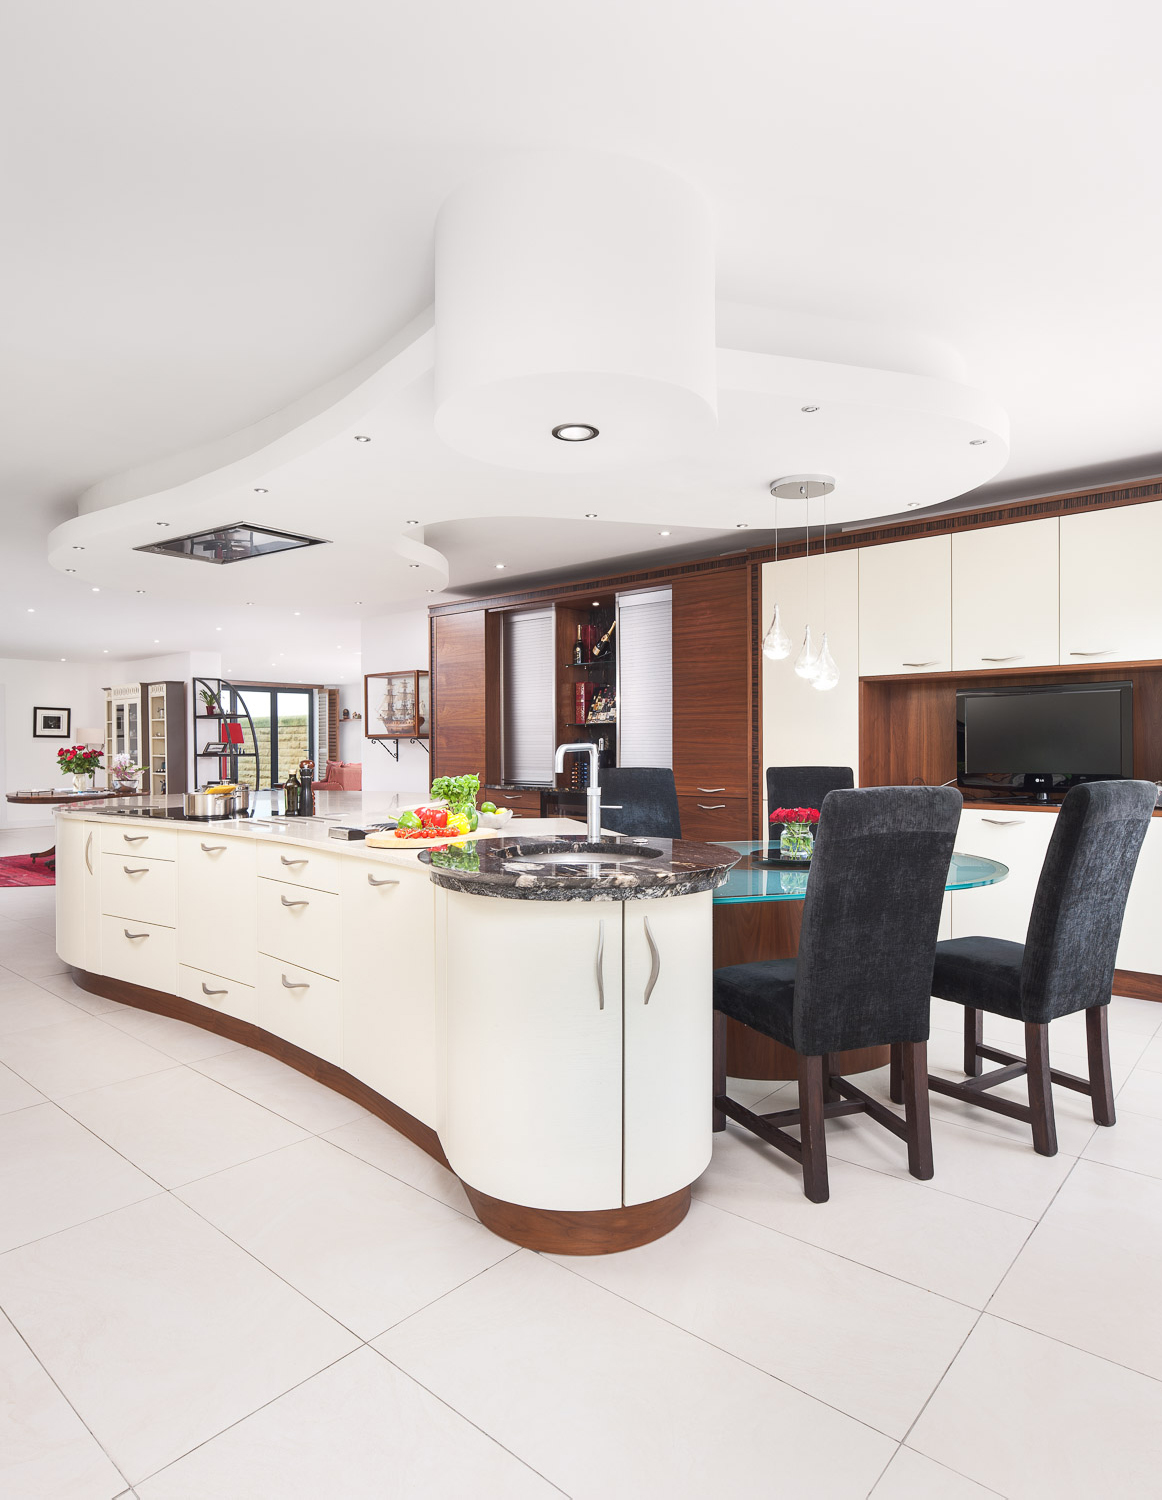 Kitchens International - Mr & Mrs Laing 4